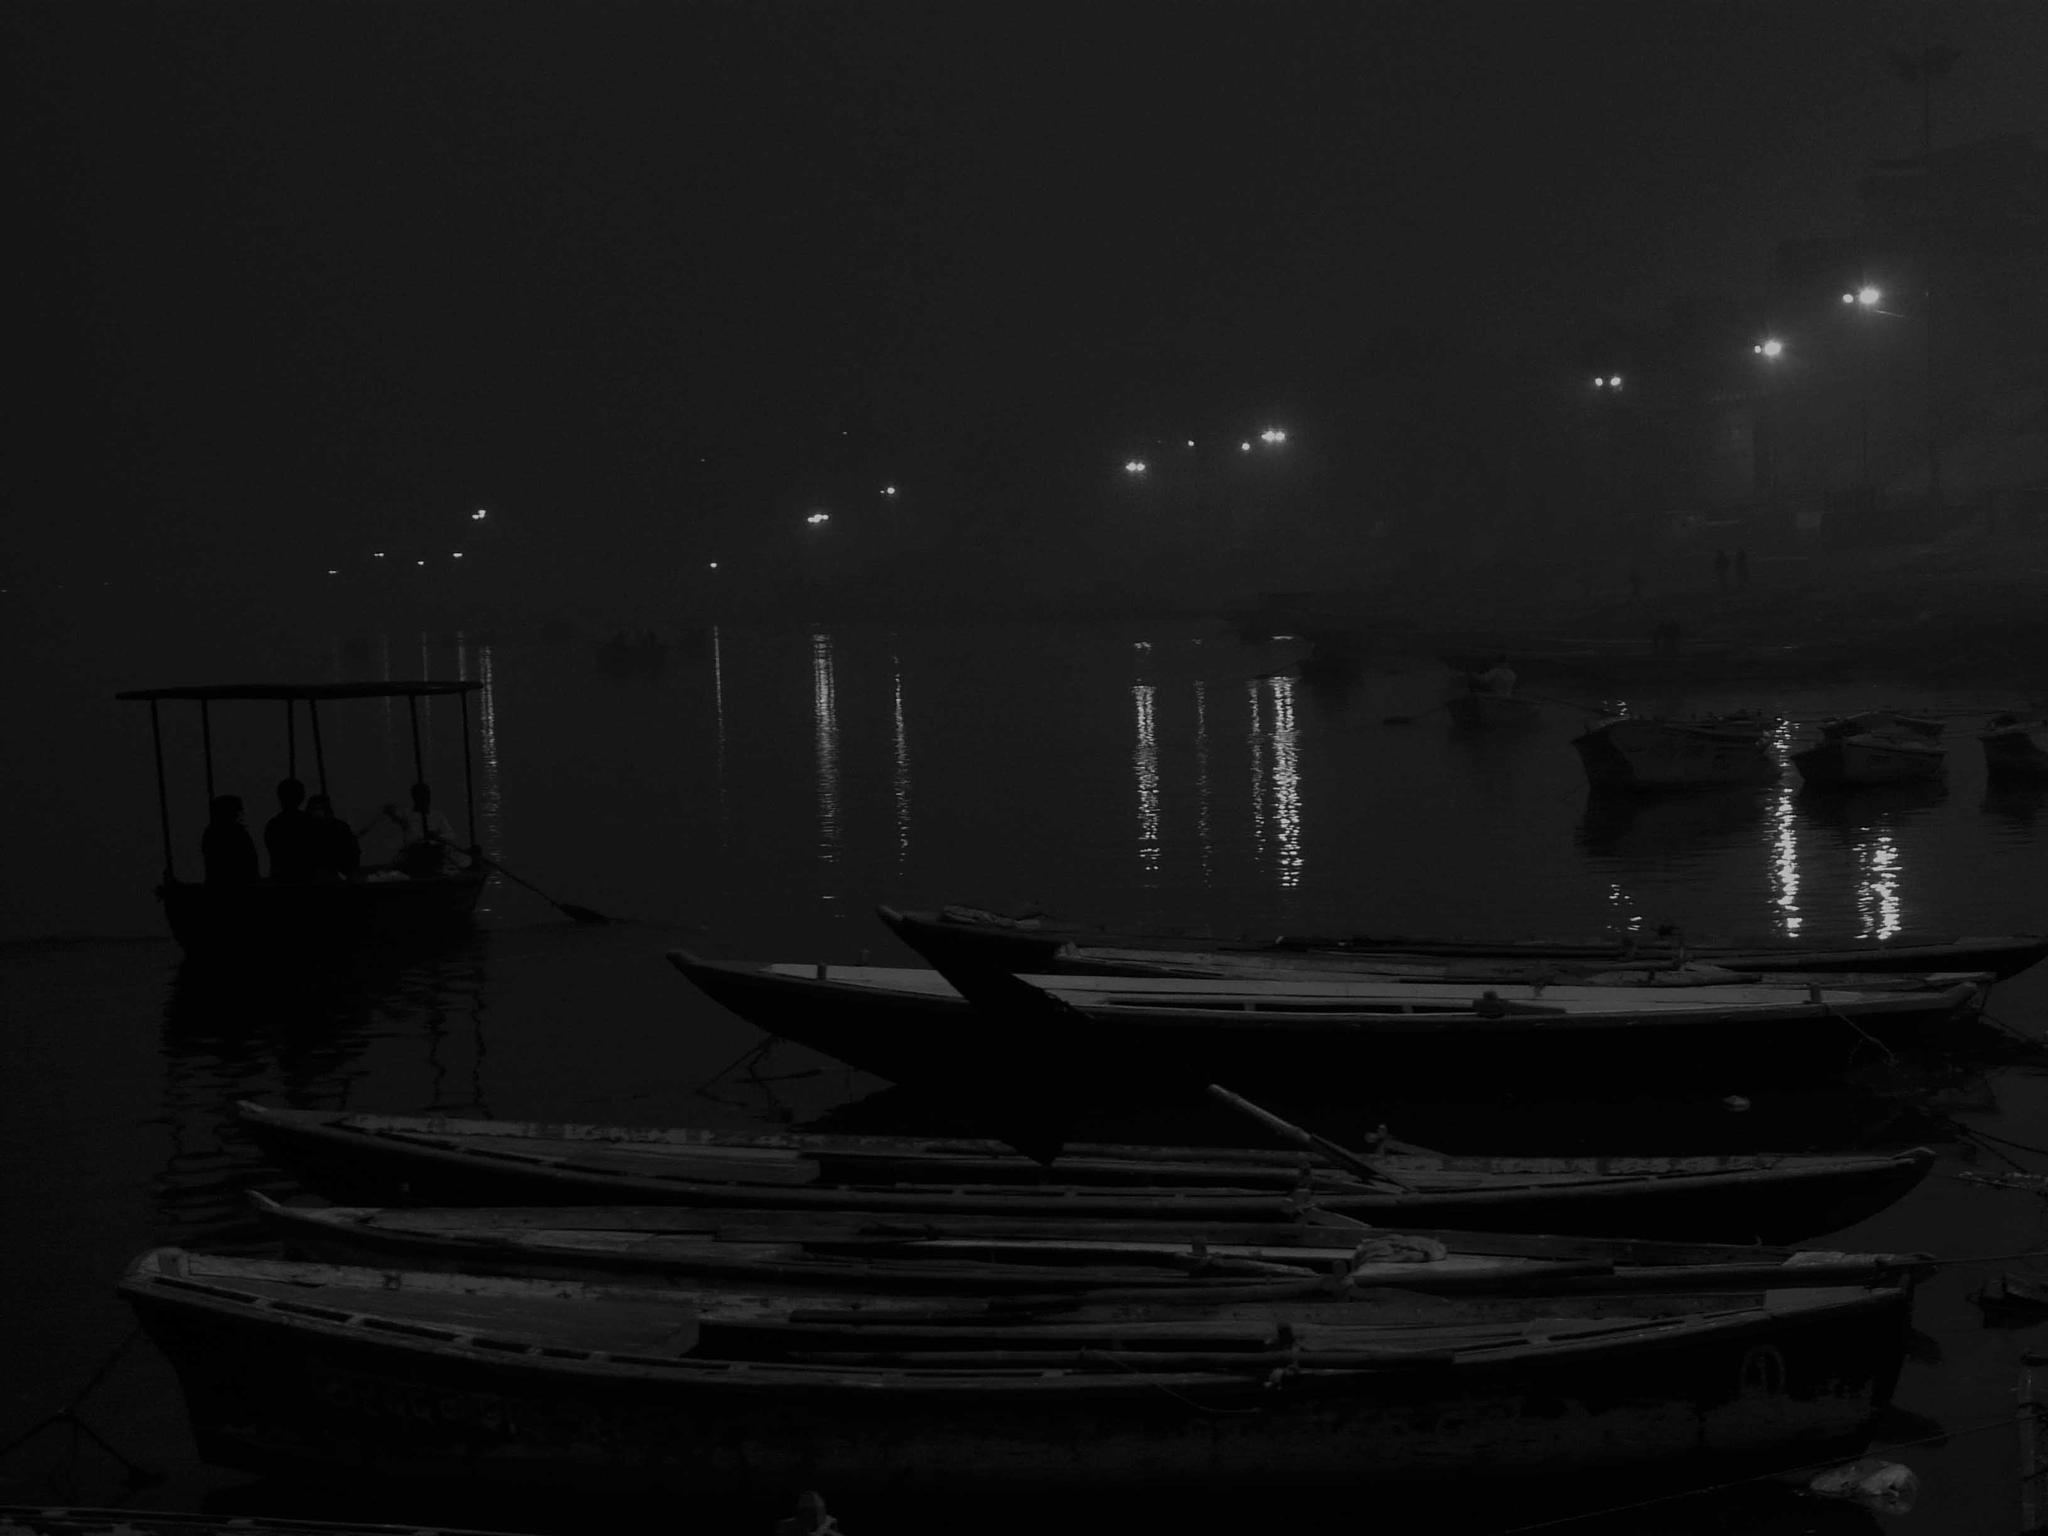 flavour of winter night  by Debashis Mondal